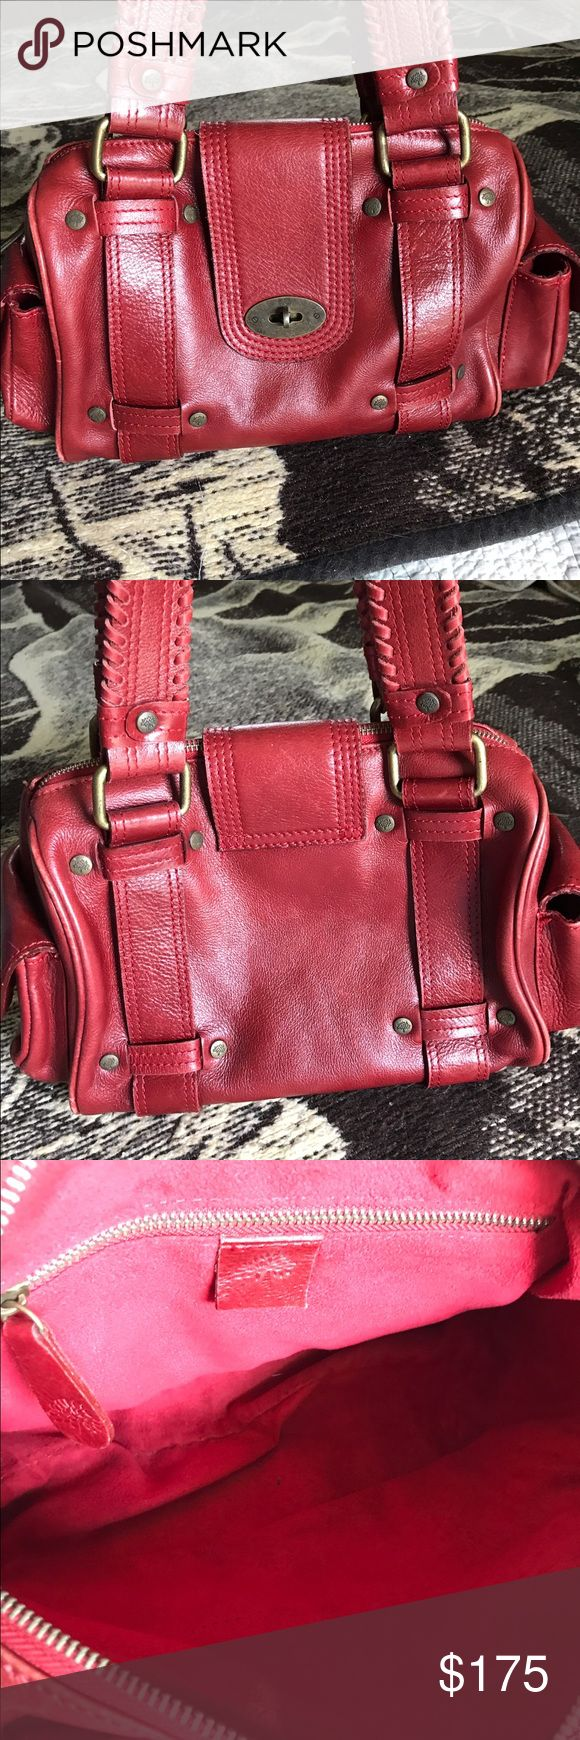 Authentic Mulberry Satchel Beautiful red Mulberry Satchel. Authentic and vintage. Has 2 pockets on either end and one zip pocket inside. There is light scuffing on the corners, as shown, but the bottom is great. Very clean on the inside. Mulberry Bags Satchels